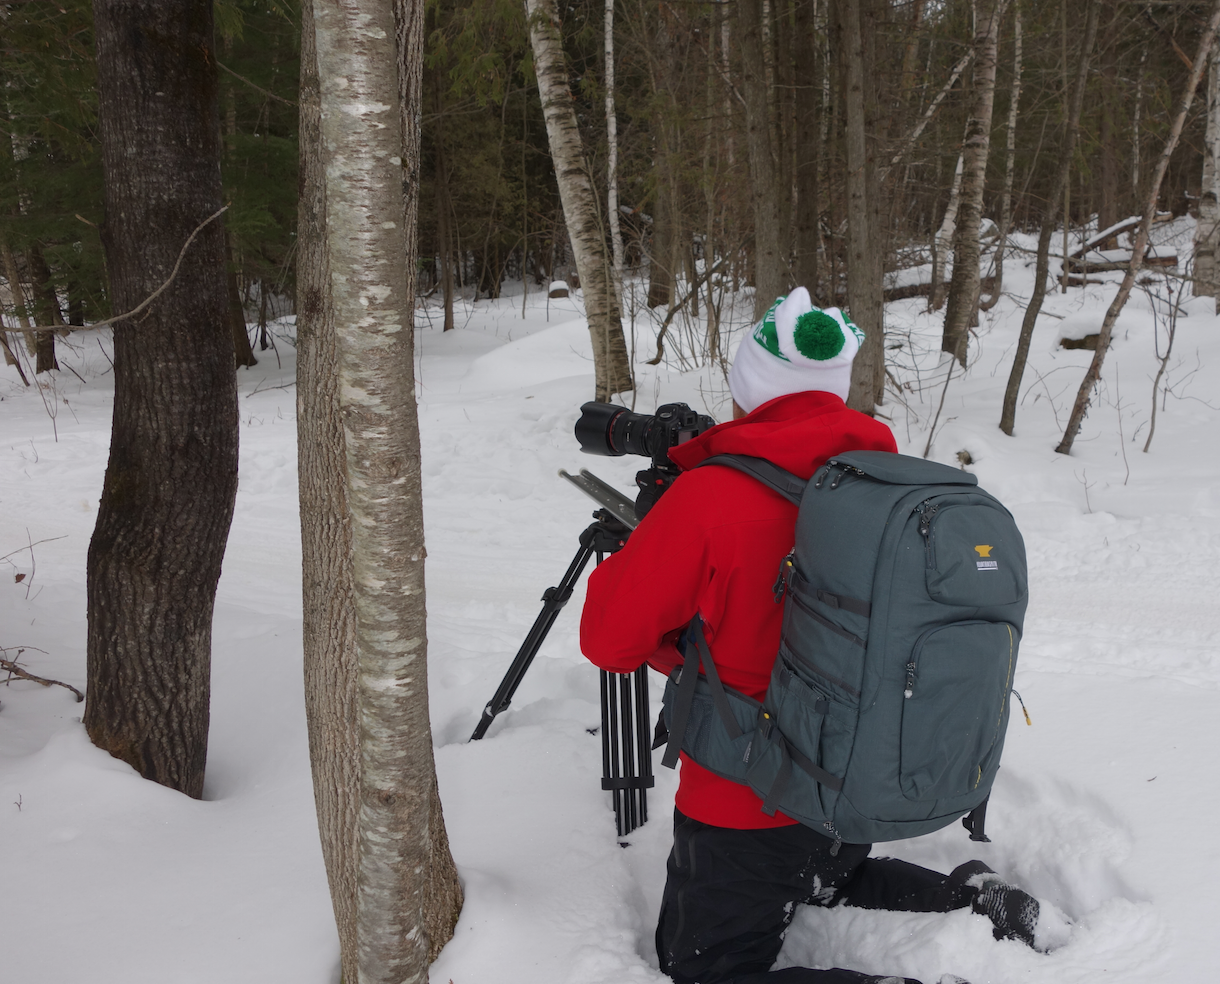 Evan Kay, Ibex In-house videographer shooting some Fat Biking in Barre, VT in the snow with his Mountainsmith Parallax